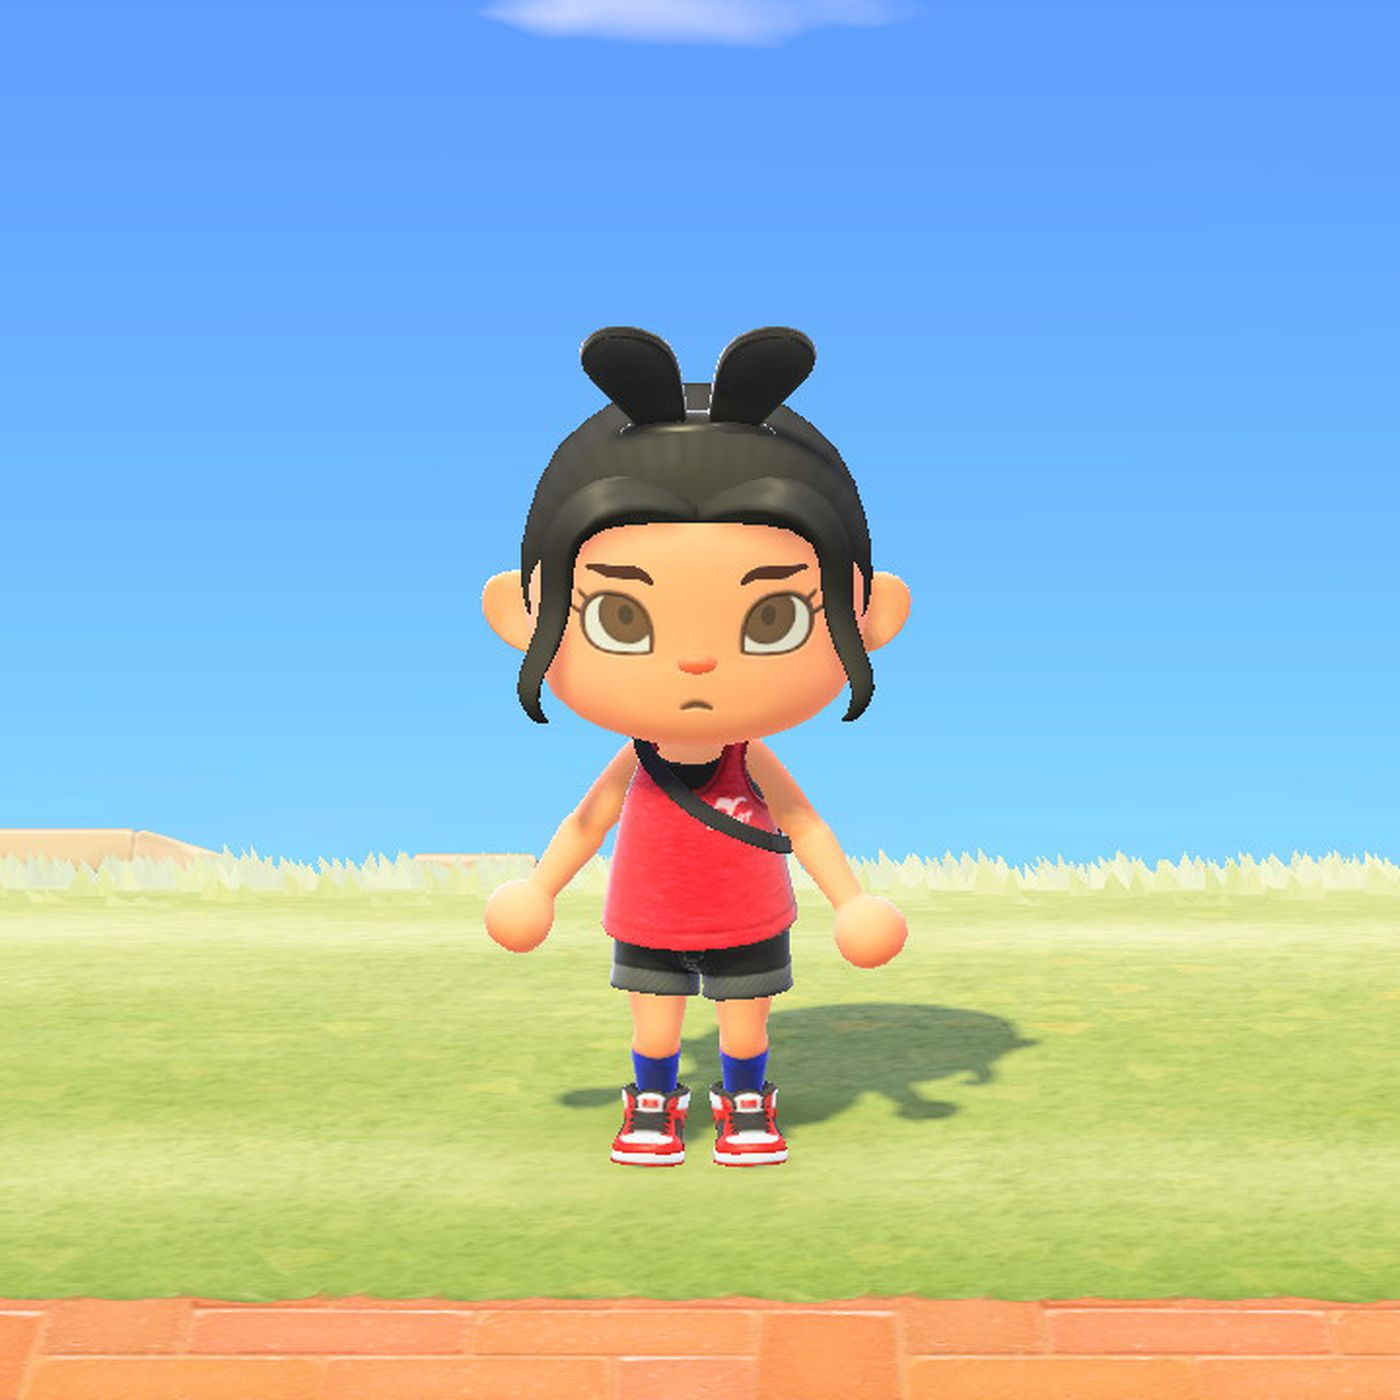 Customize Eyebrows Freckles And Birthmarks In Animal Crossing New Horizons Switch Guide Polygon